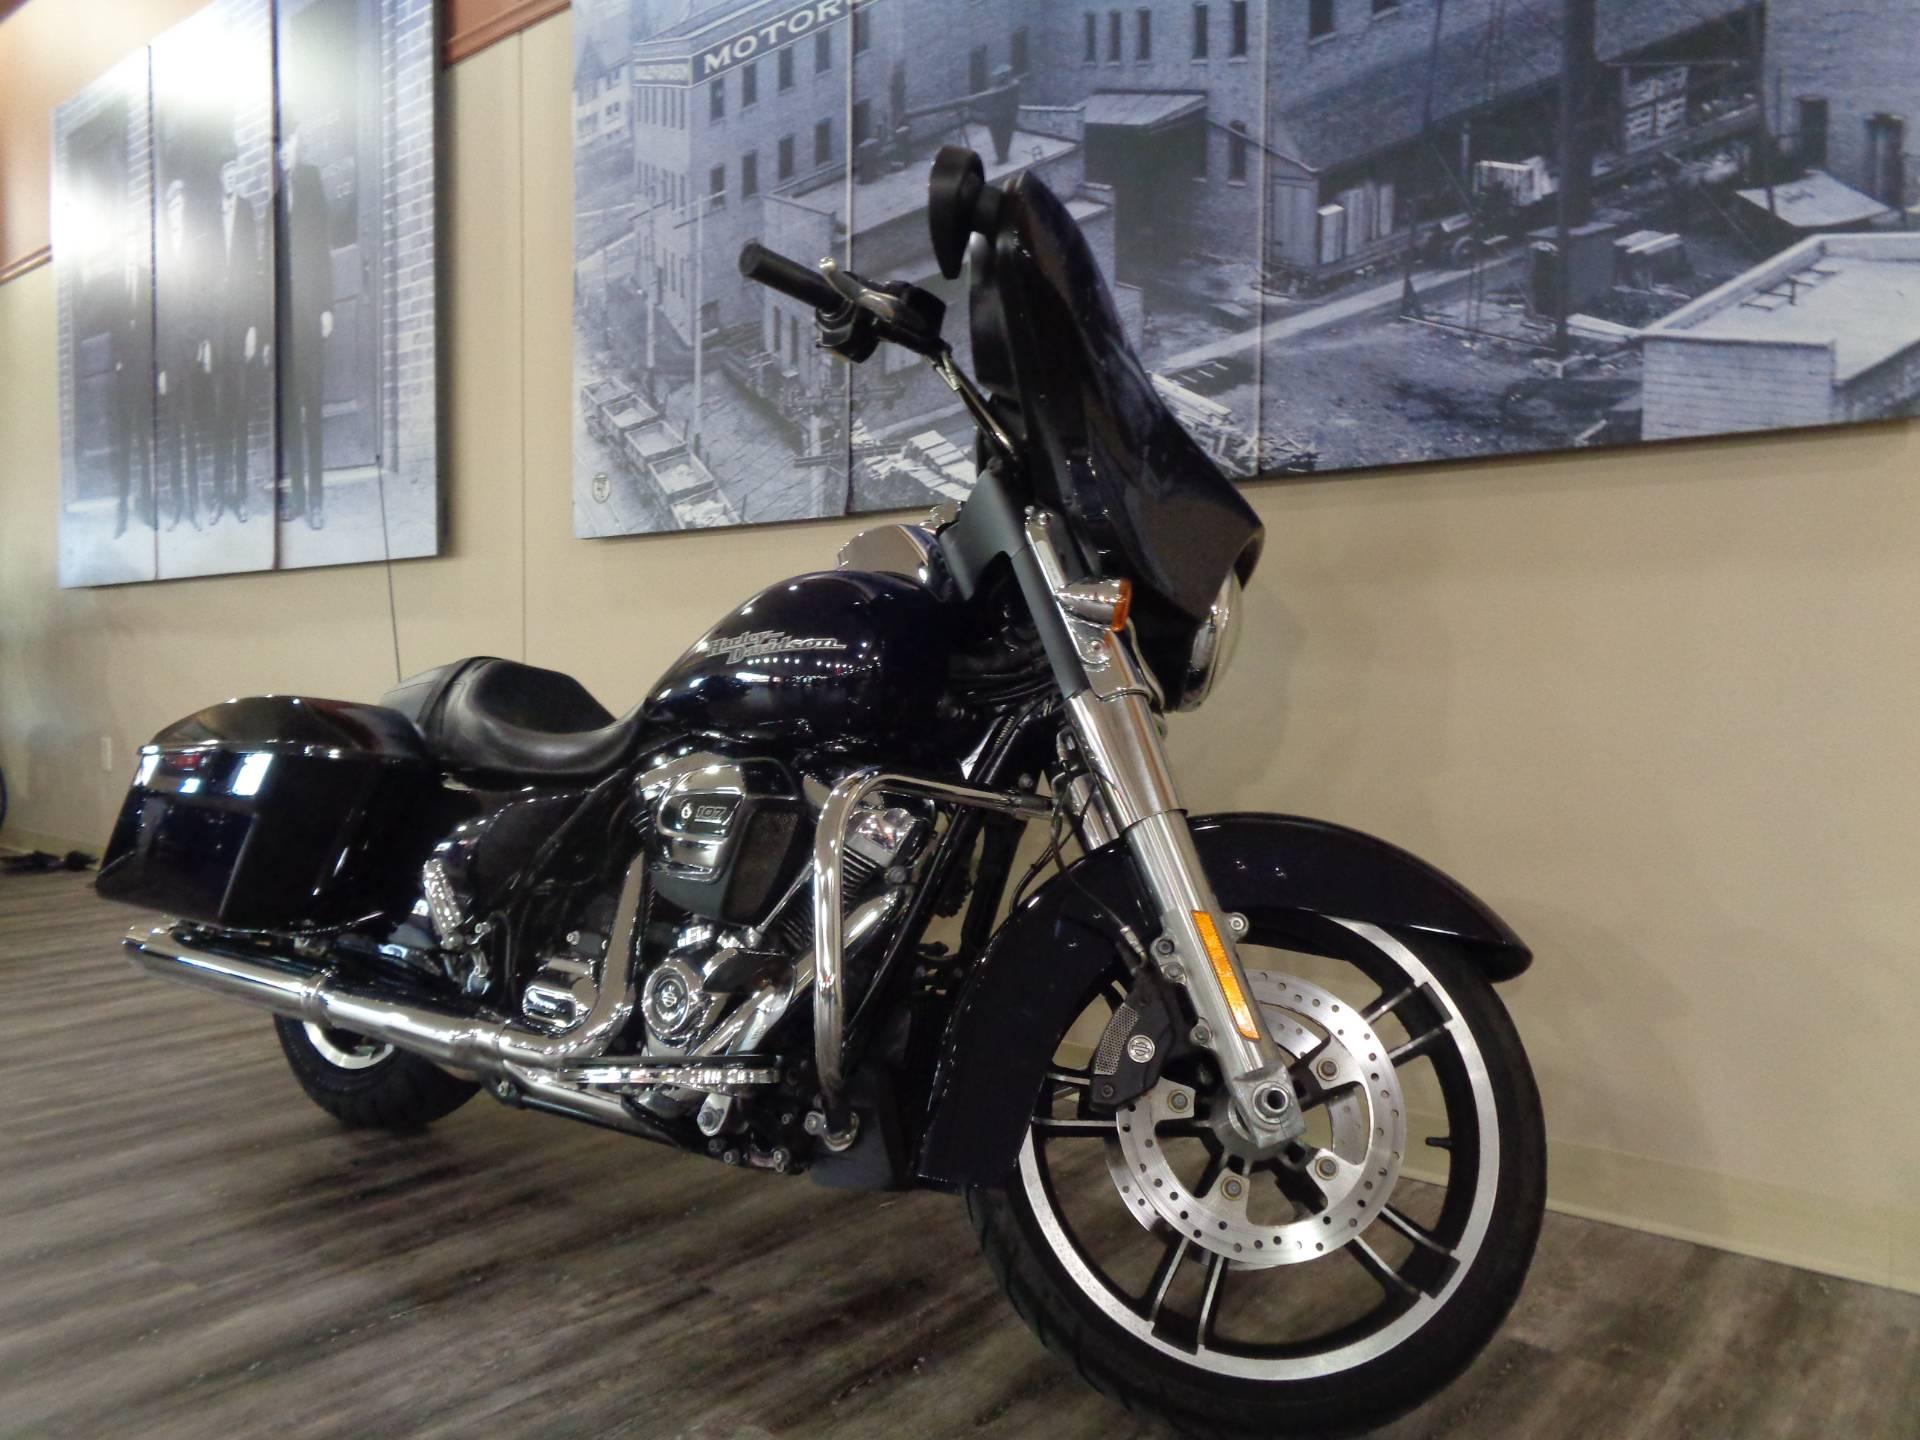 Used 2019 Harley Davidson Street Glide Motorcycles In Knoxville